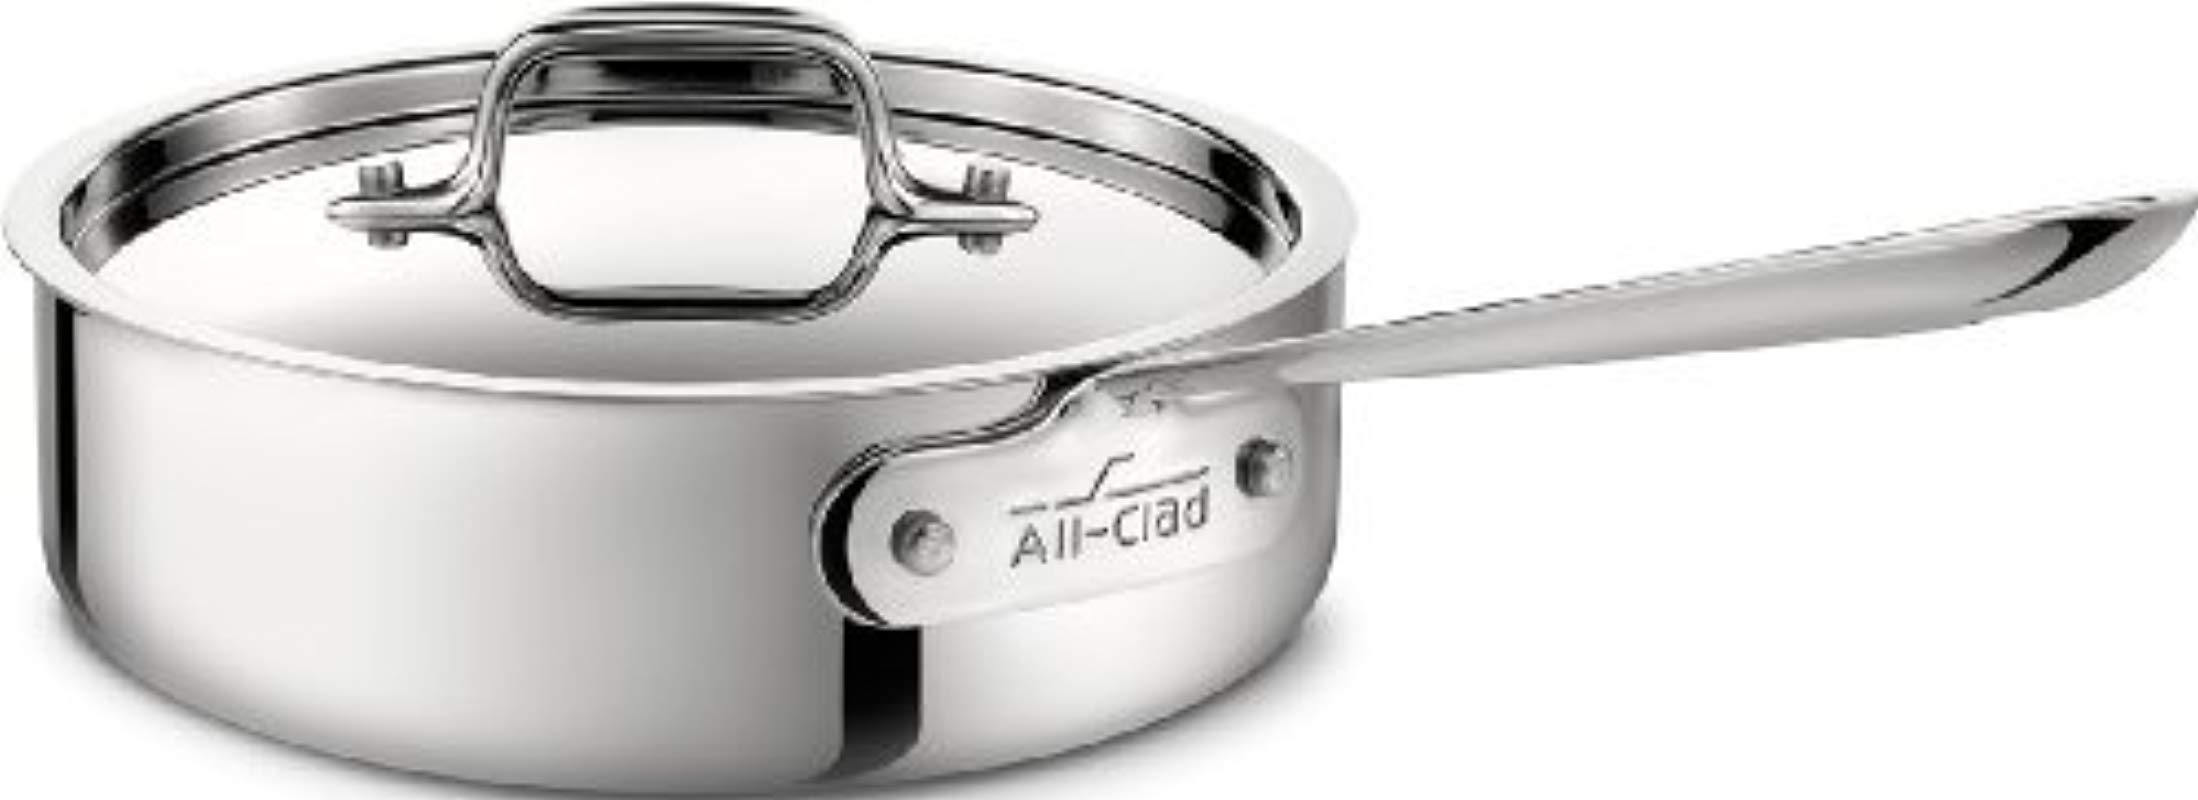 All Clad 4402 Stainless Steel Tri Ply Bonded Dishwasher Safe Saute Pan With Lid Cookware 2 Quart Silver By All Clad